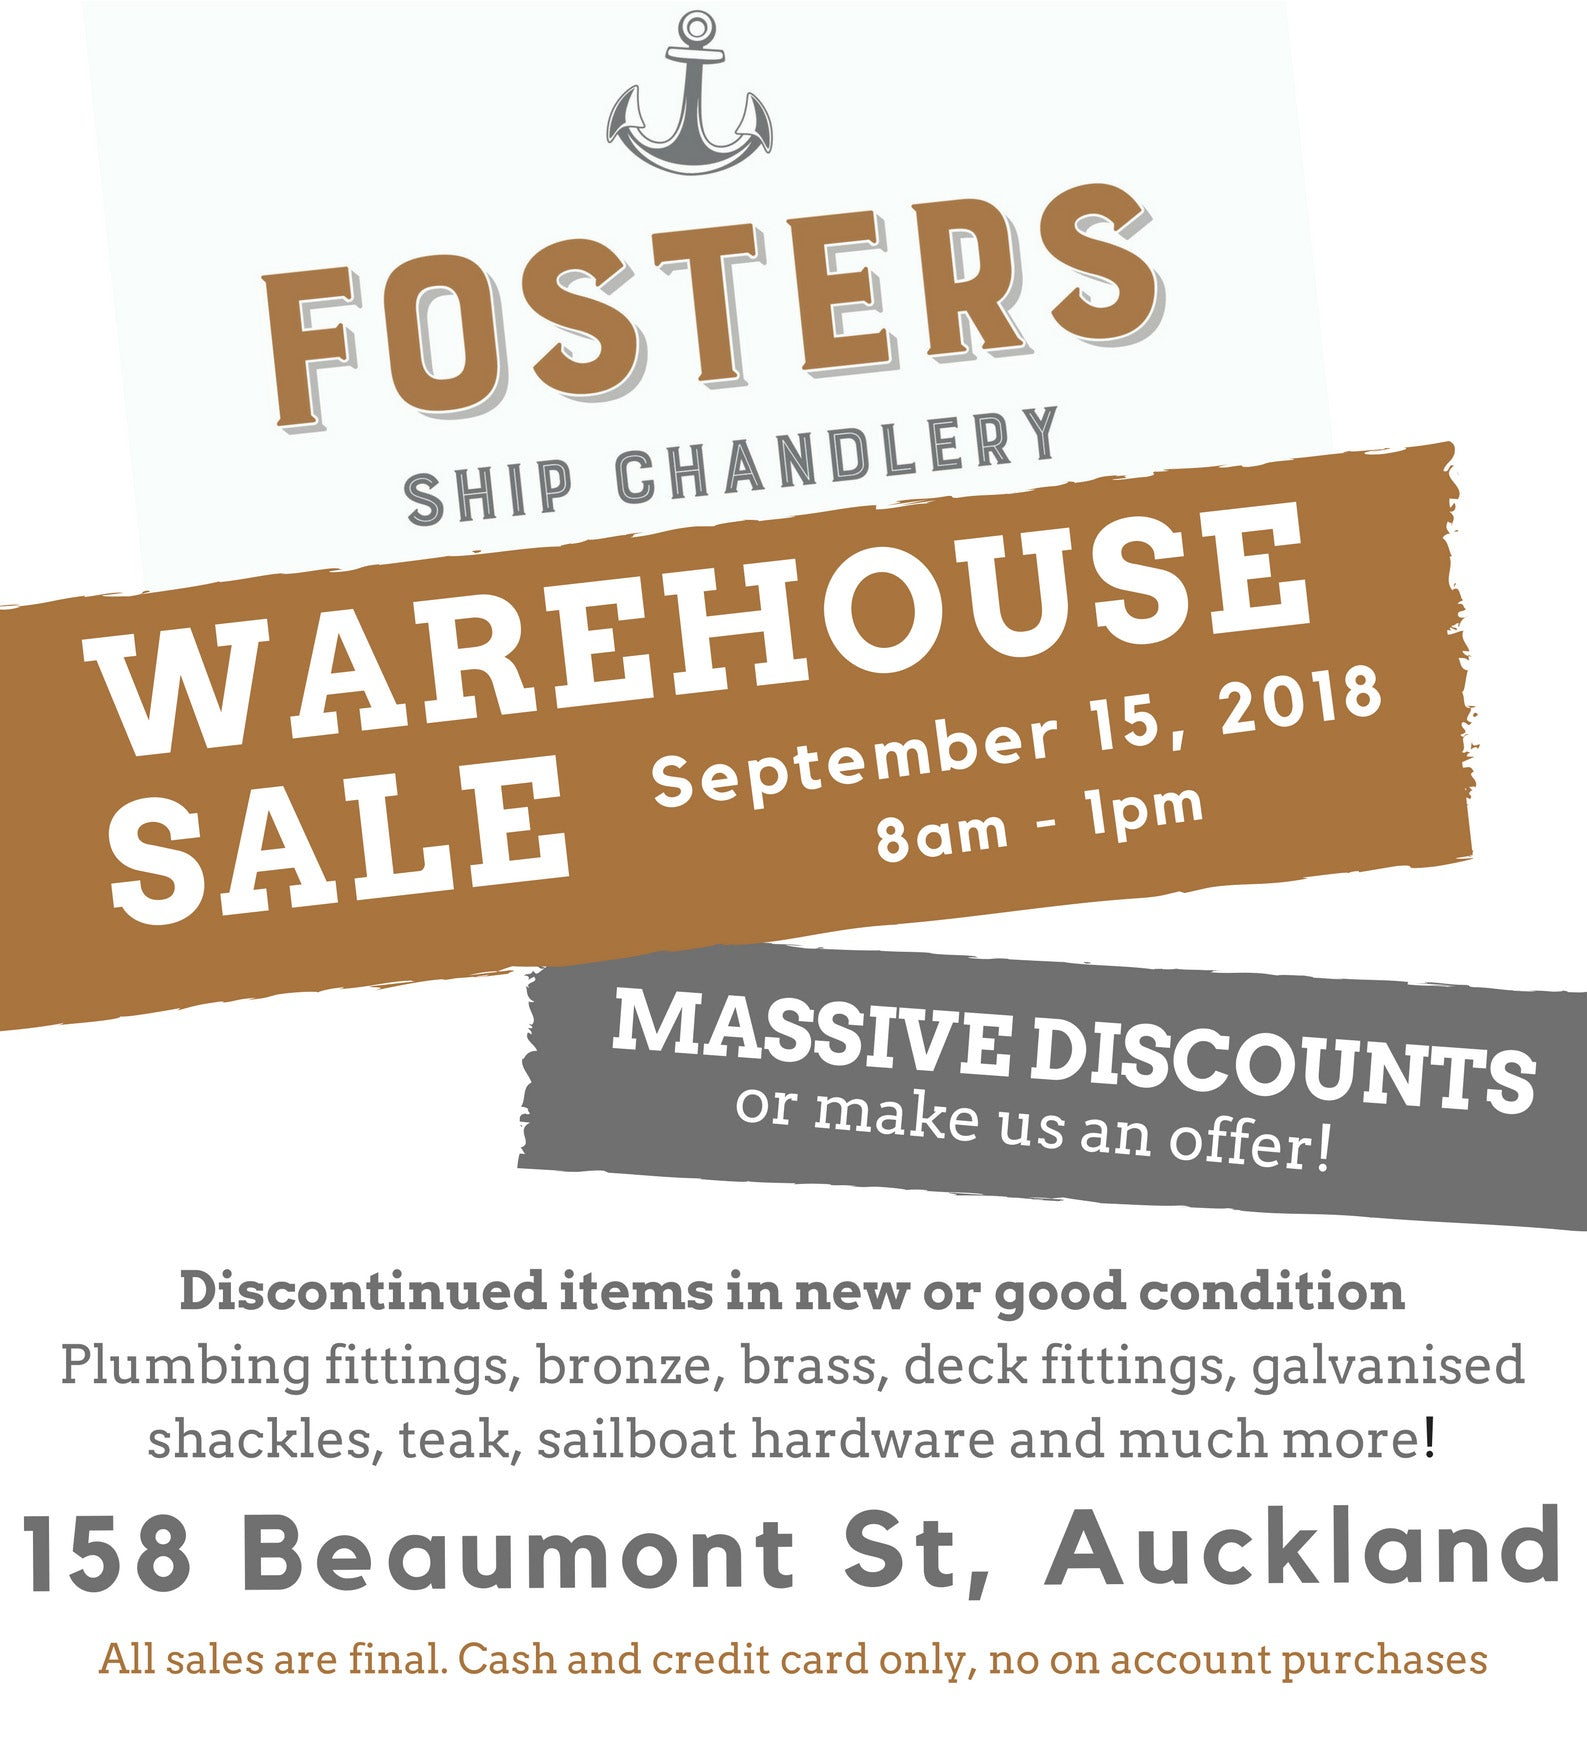 Fosters Ship Chandlery Warehouse Sale Ad